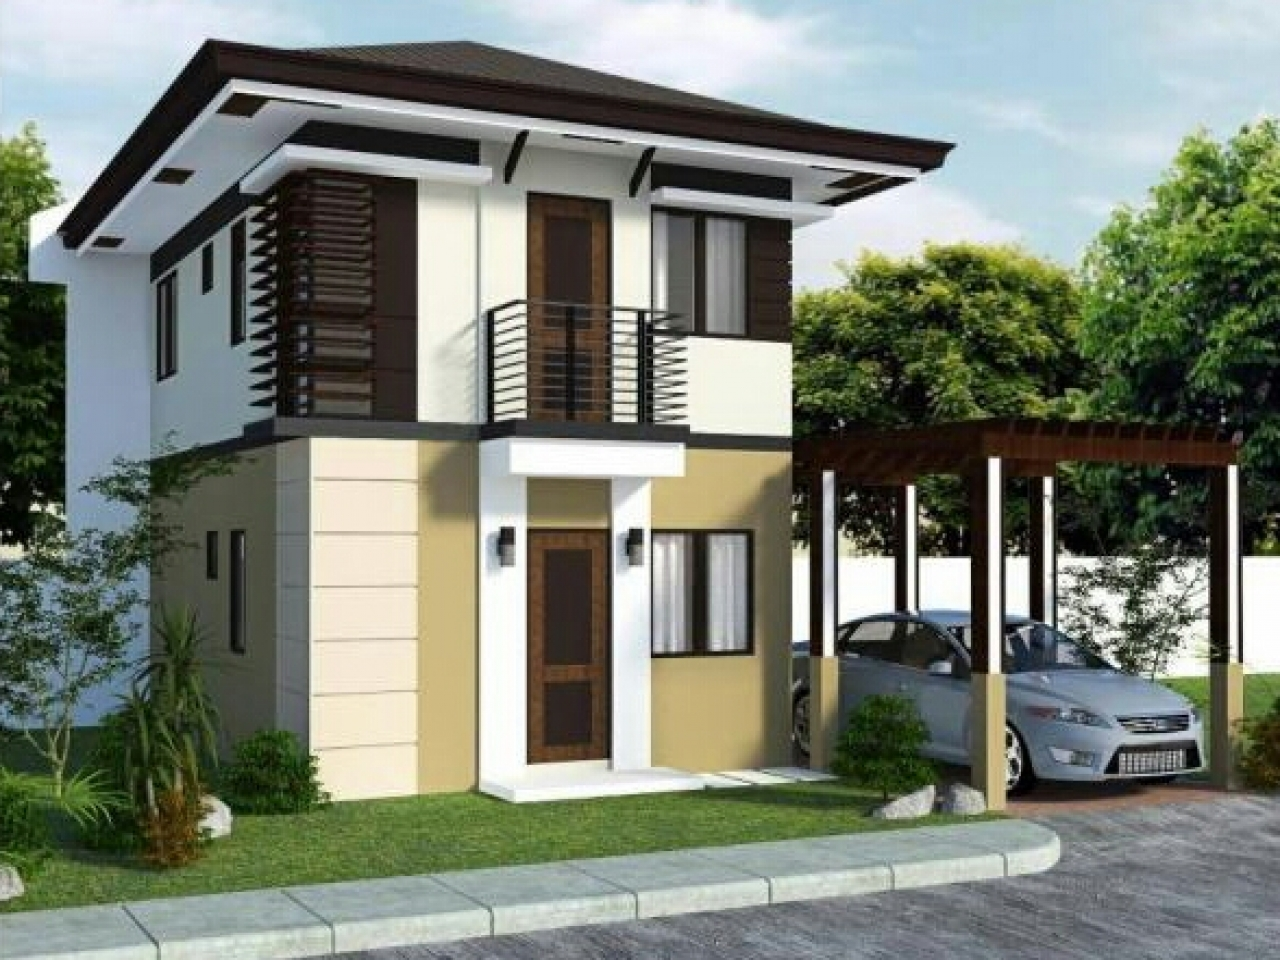 small modern homes small modern house exterior design lrg d5829d3f331d5a4d - 27+ Small Modern Exterior House Designs Background